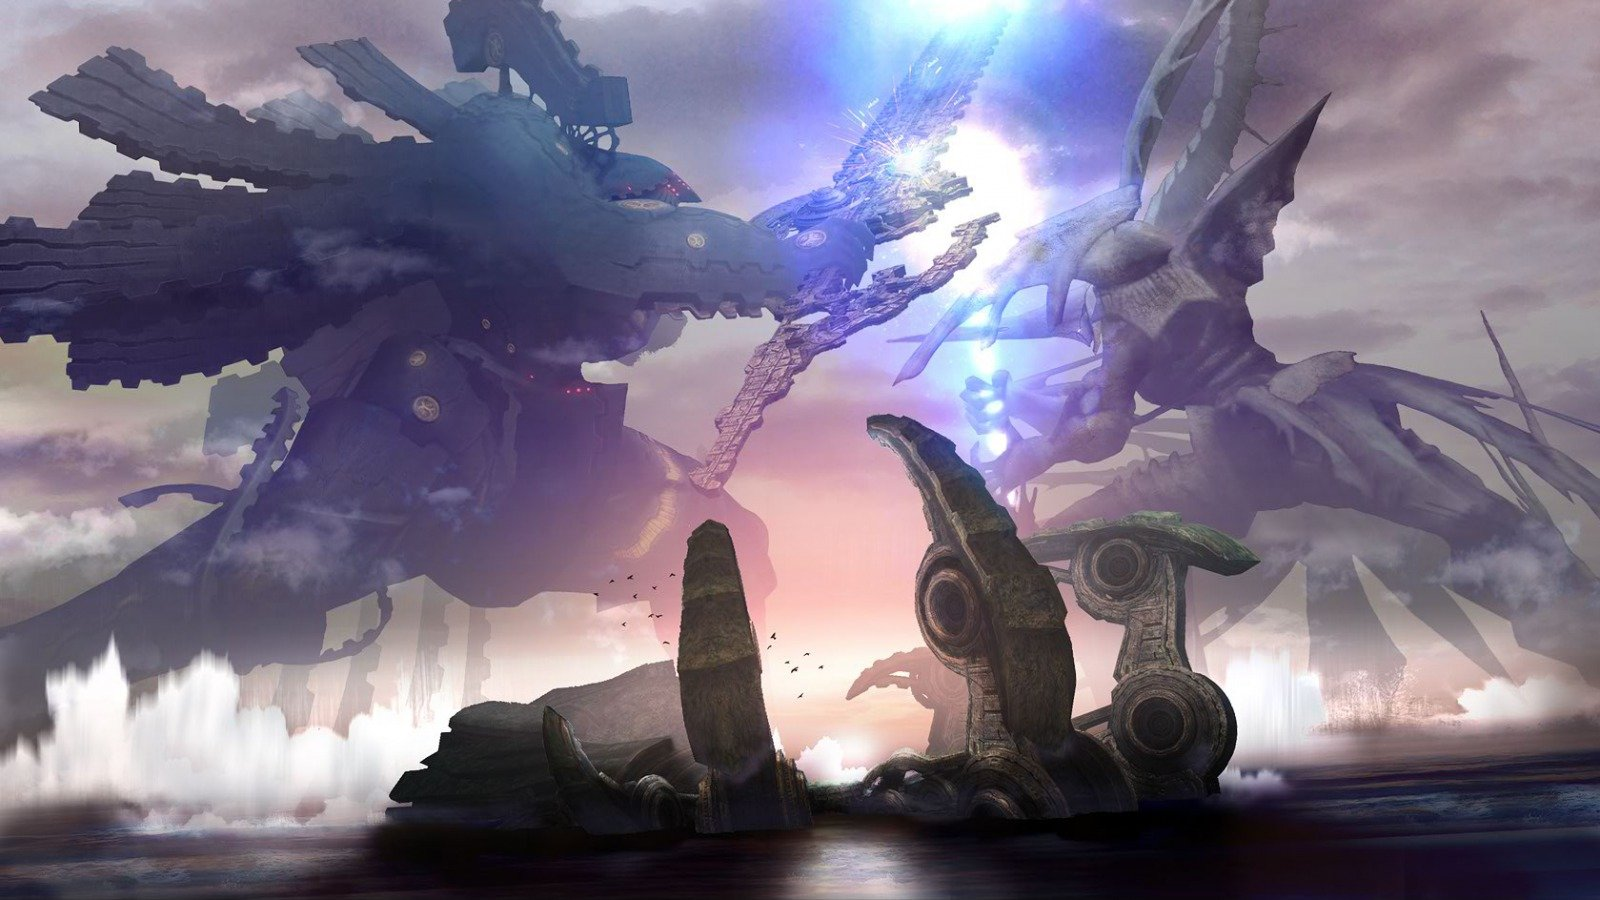 Download Hd 1600x900 Xenoblade Chronicles Pc Wallpaper Id 111436